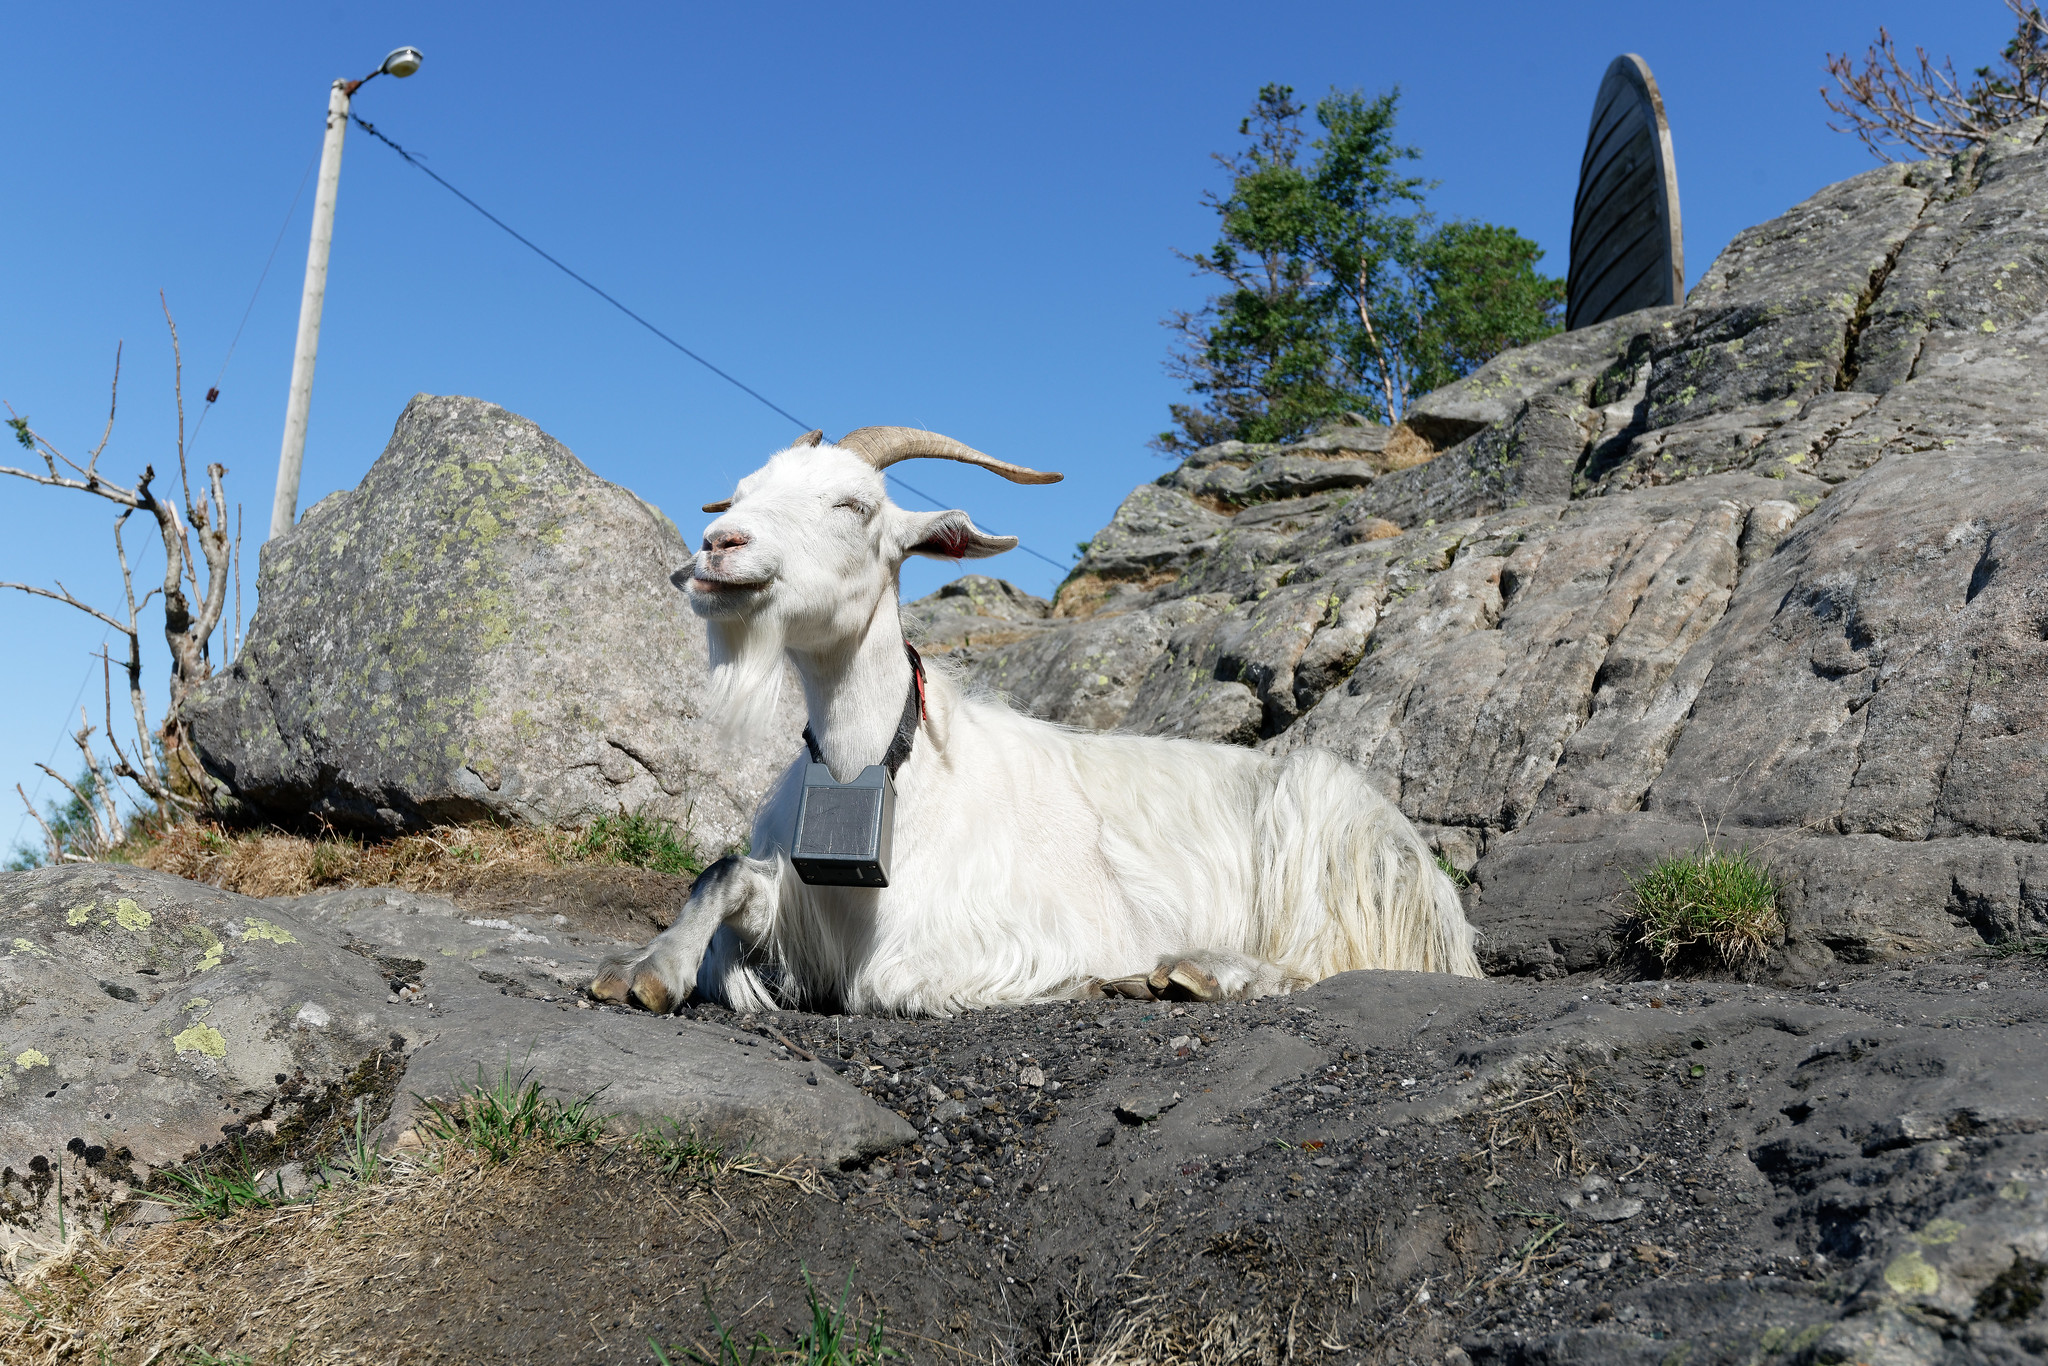 Goat On Mount Fløyen